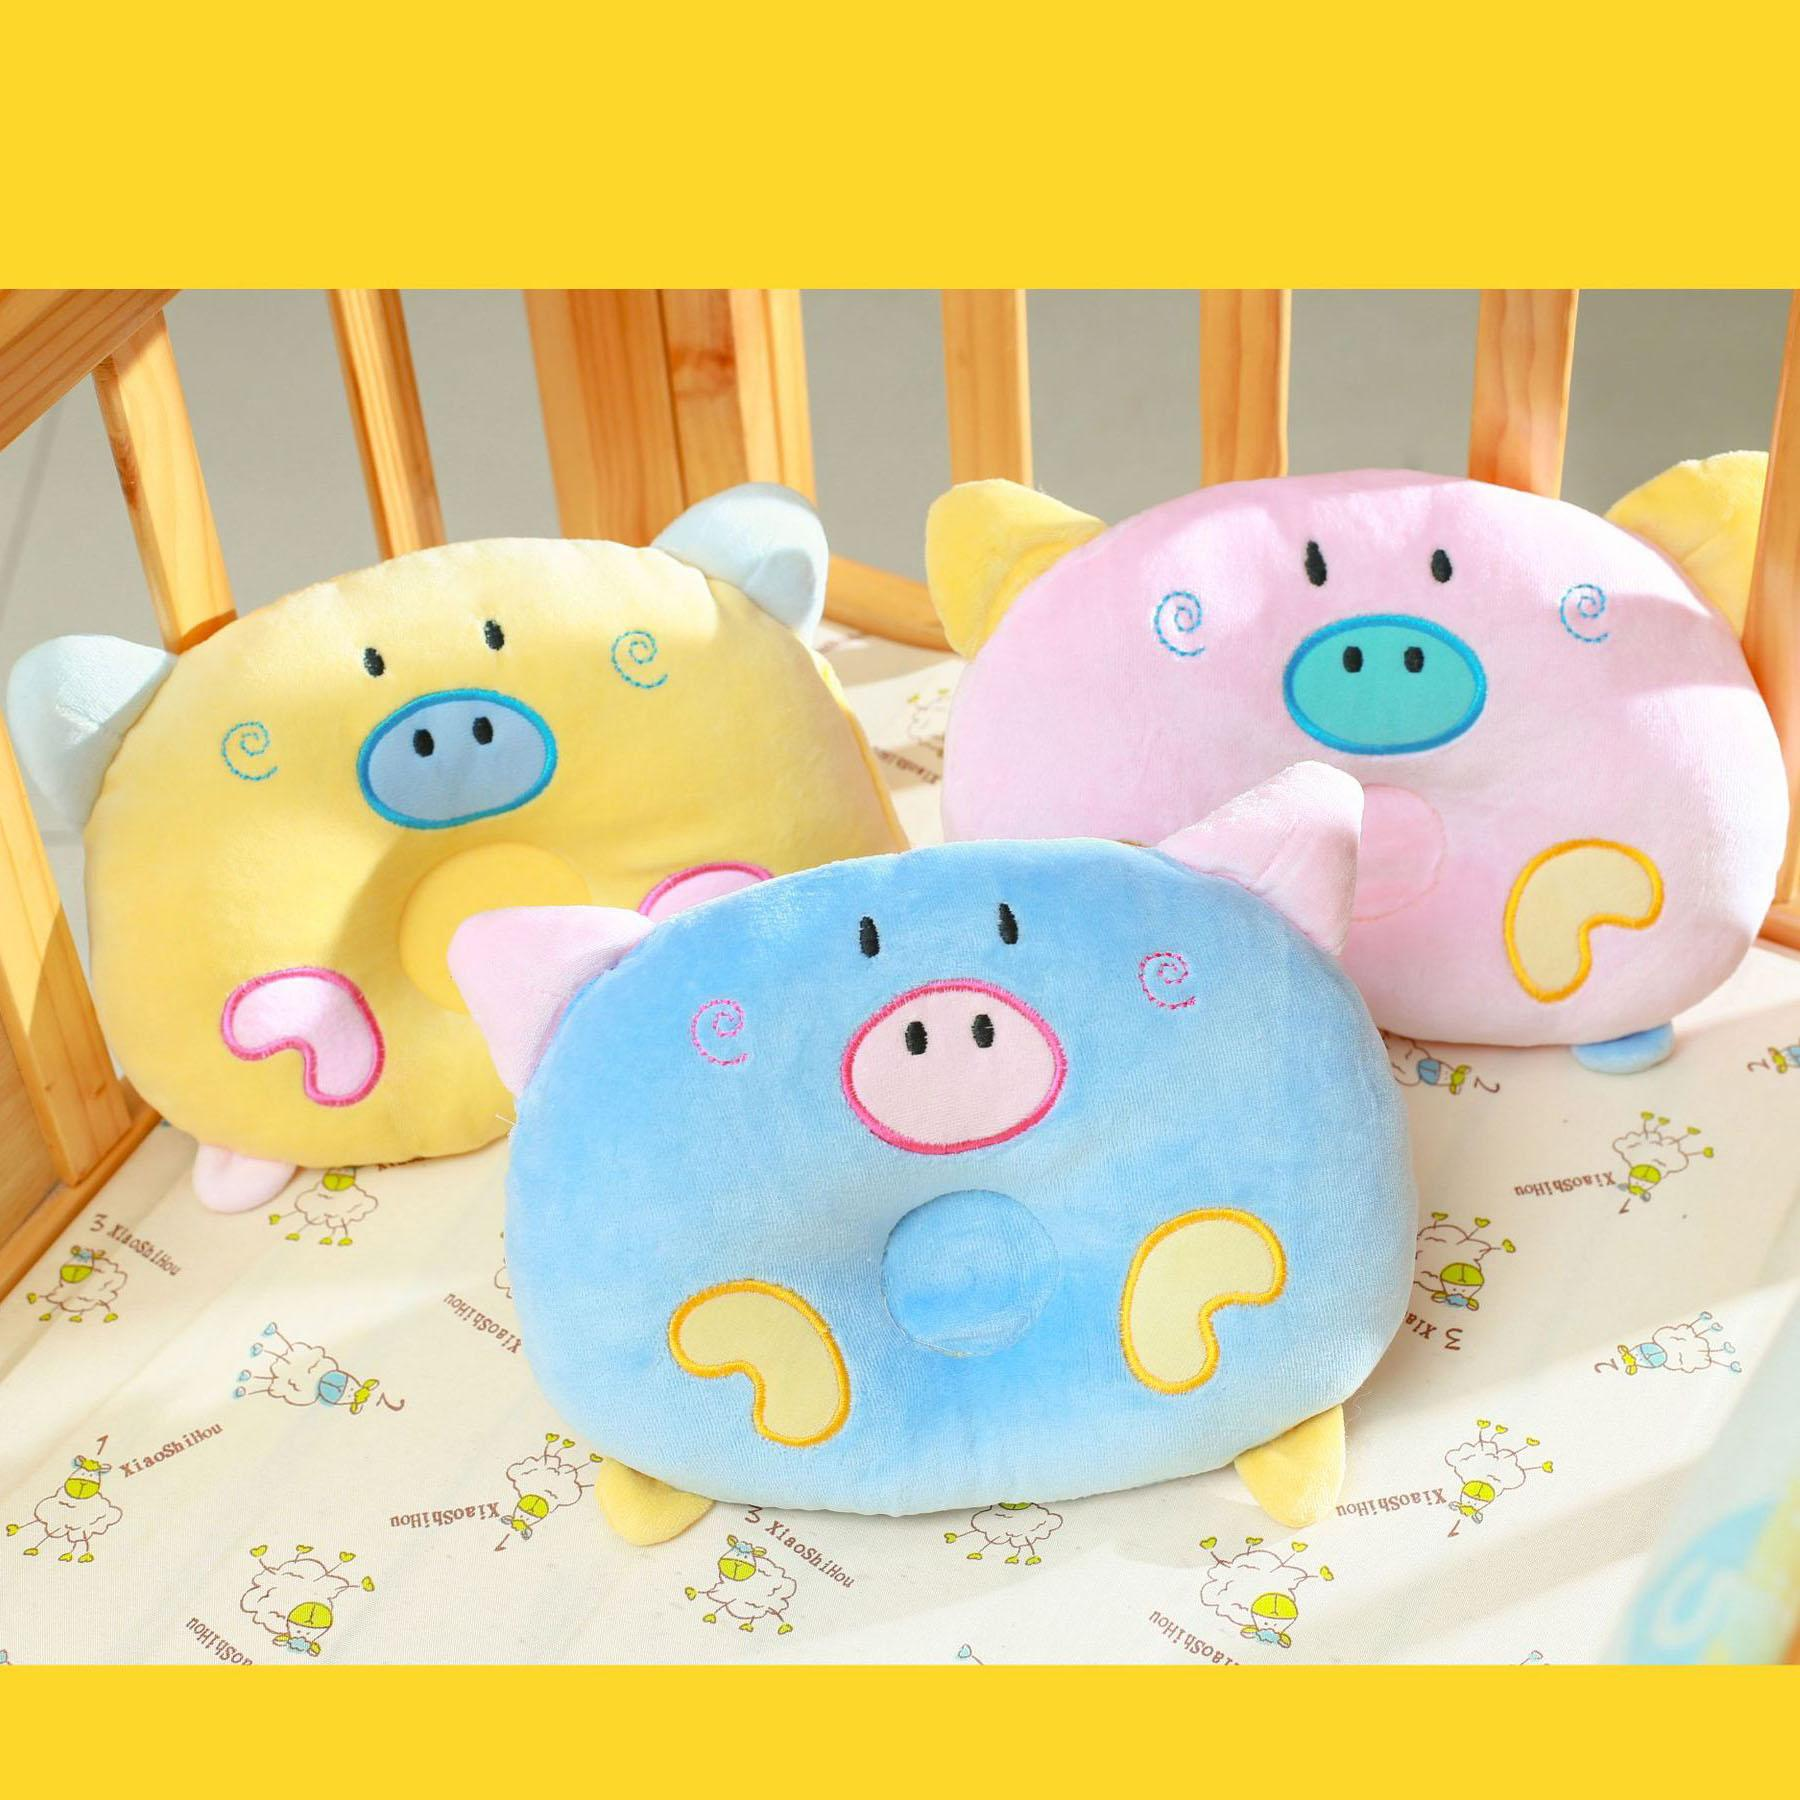 590990e50 Baby Pillow Case Protectors for sale - Crib Pillow Case Protector ...